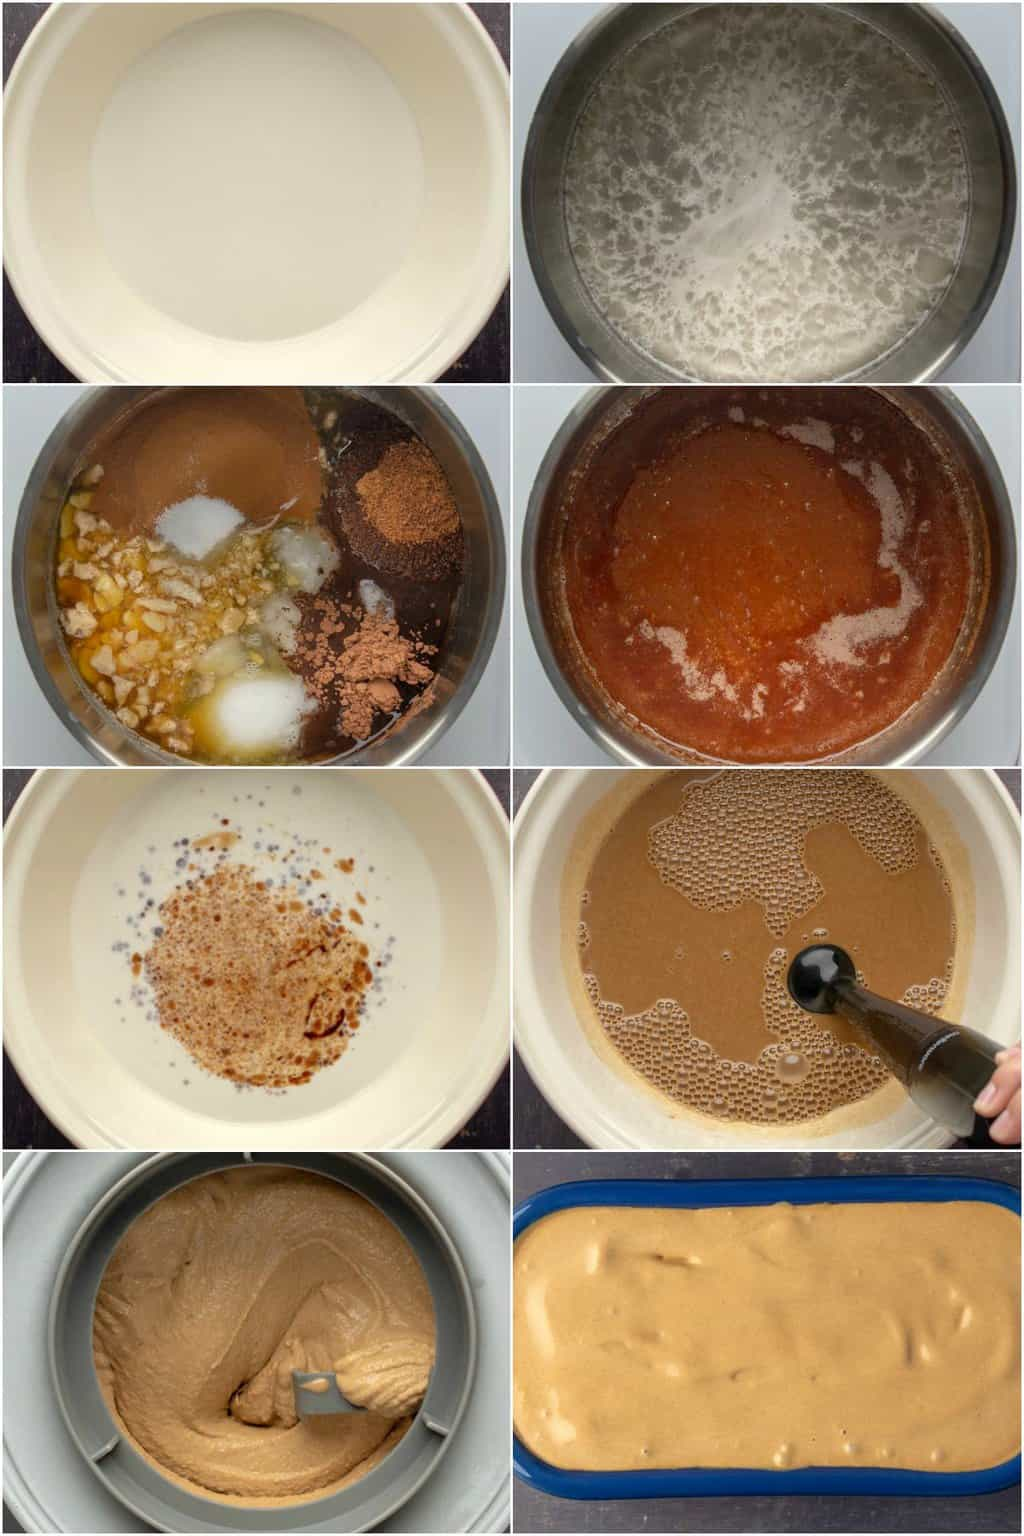 Step by step process photo collage of making vegan coffee ice cream.